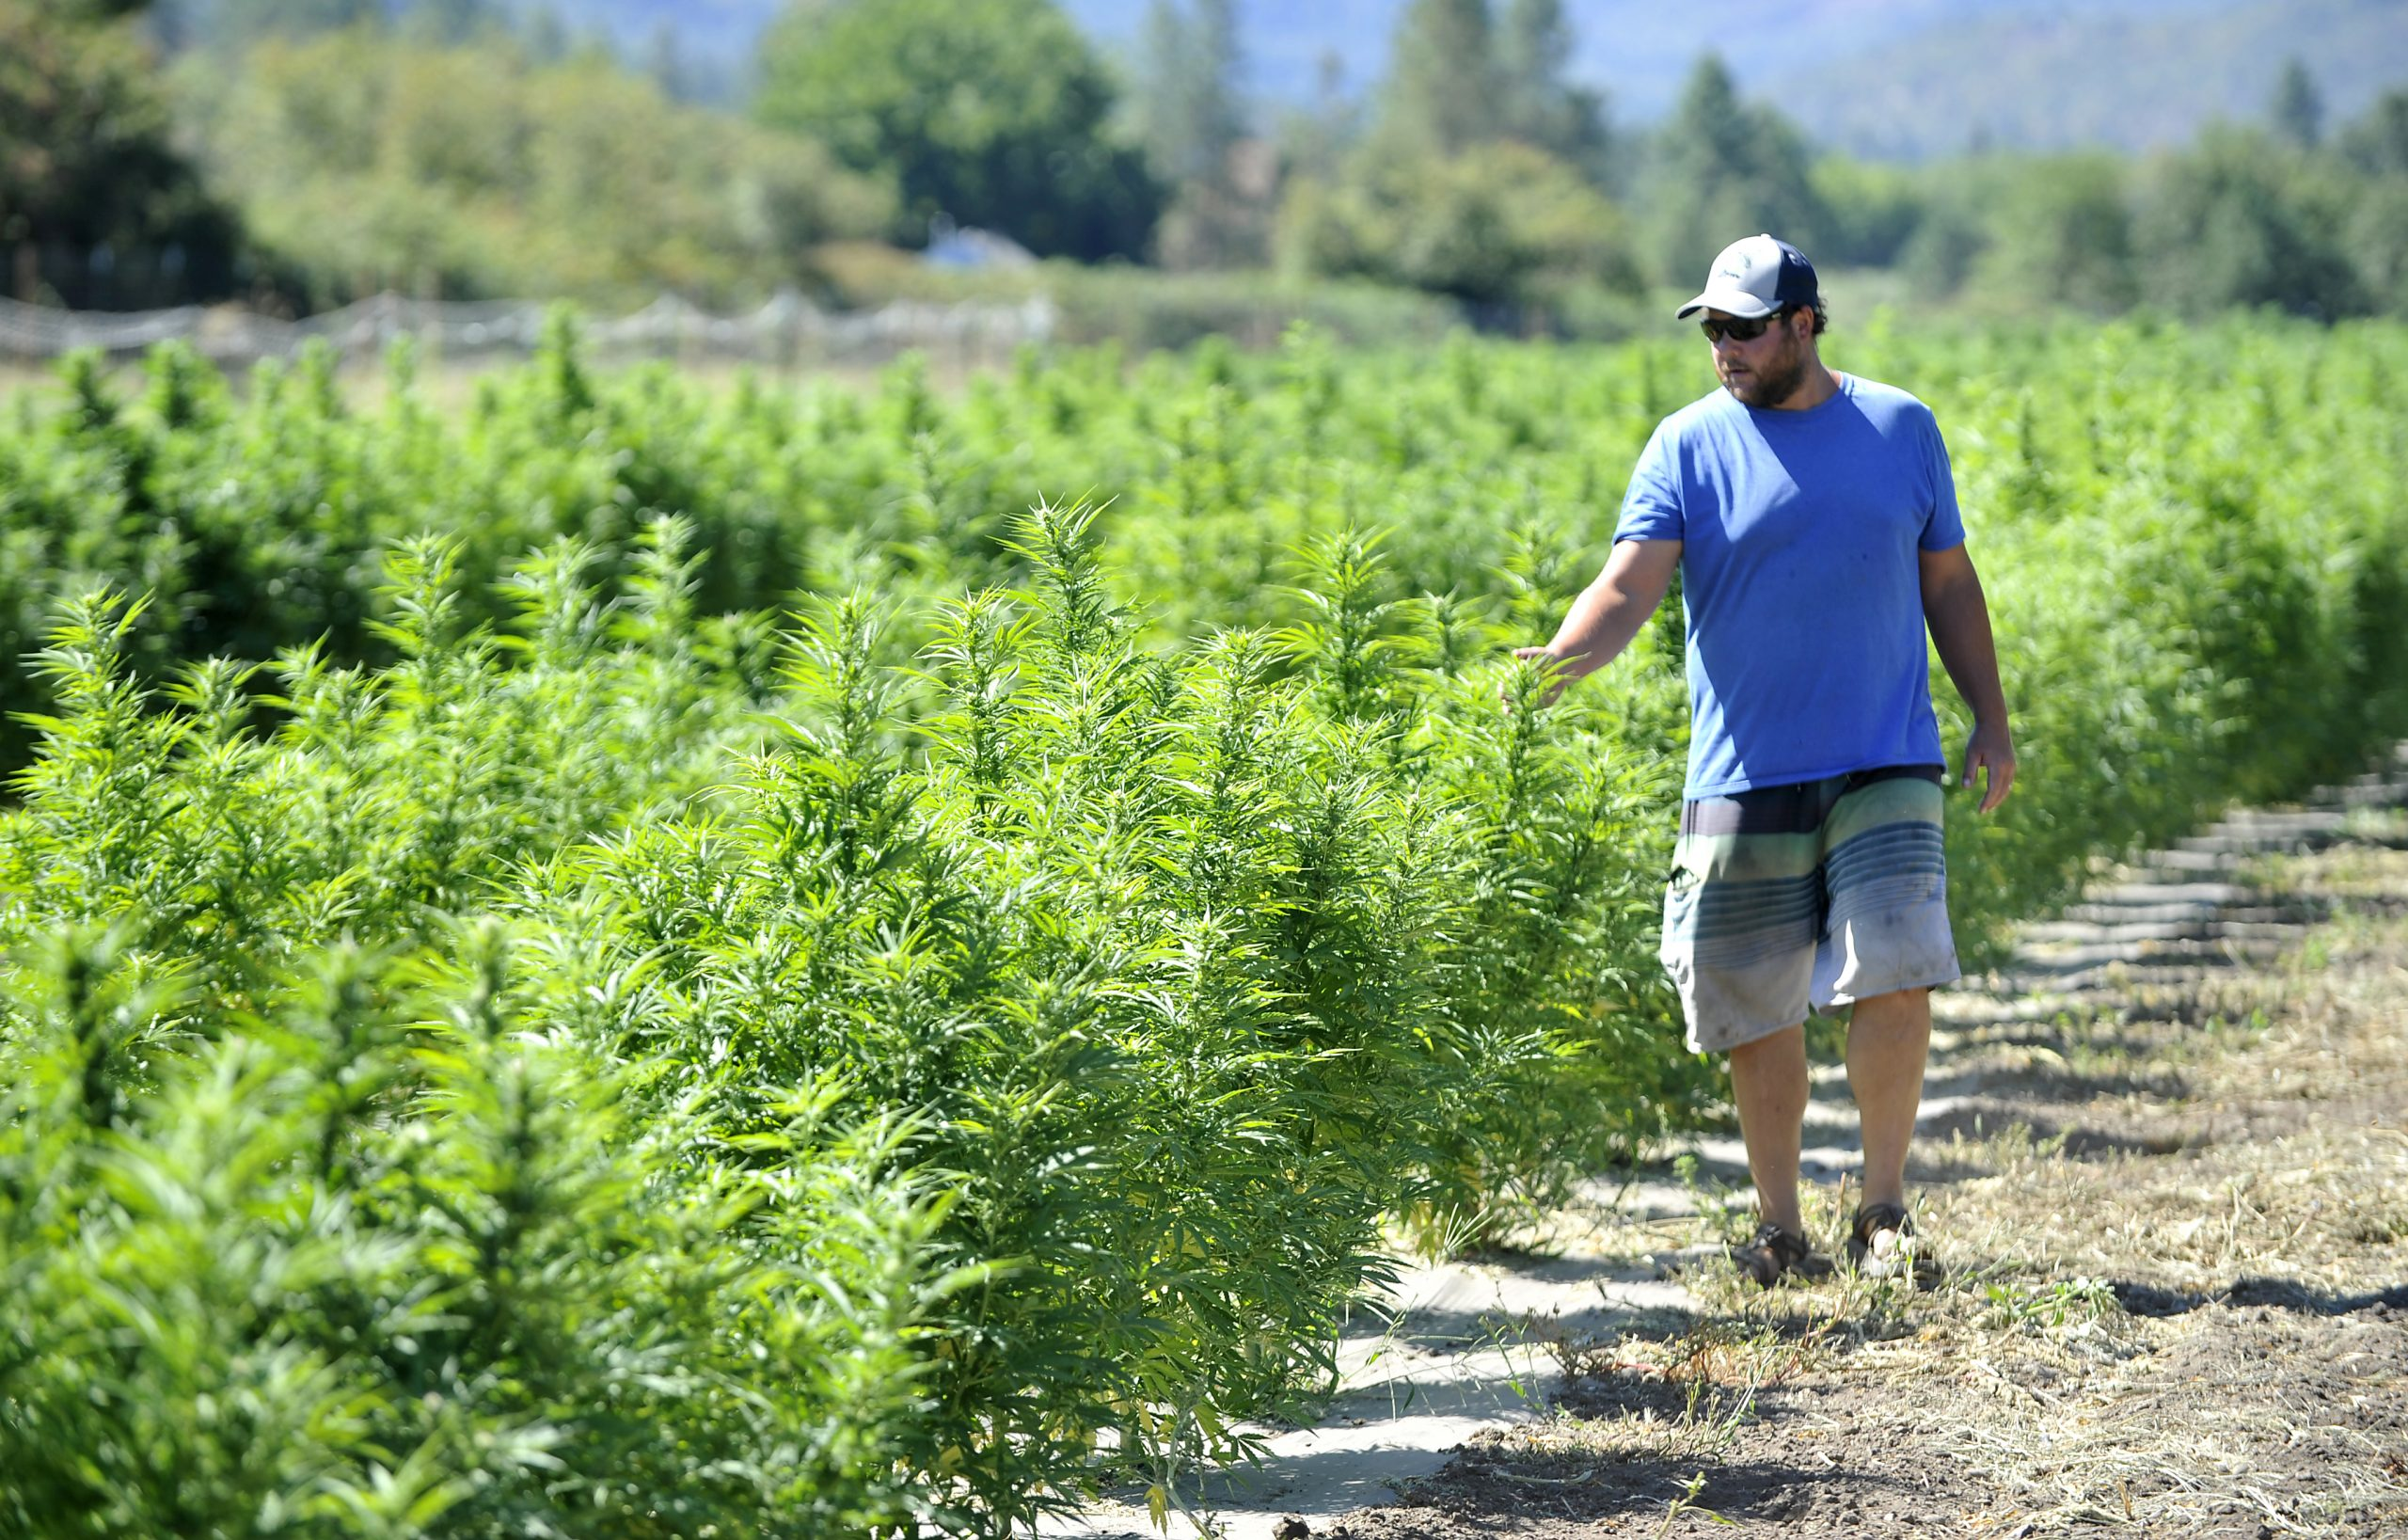 Wandering Roots Farm in Gold Hill rolls out a line of hemp tinctures